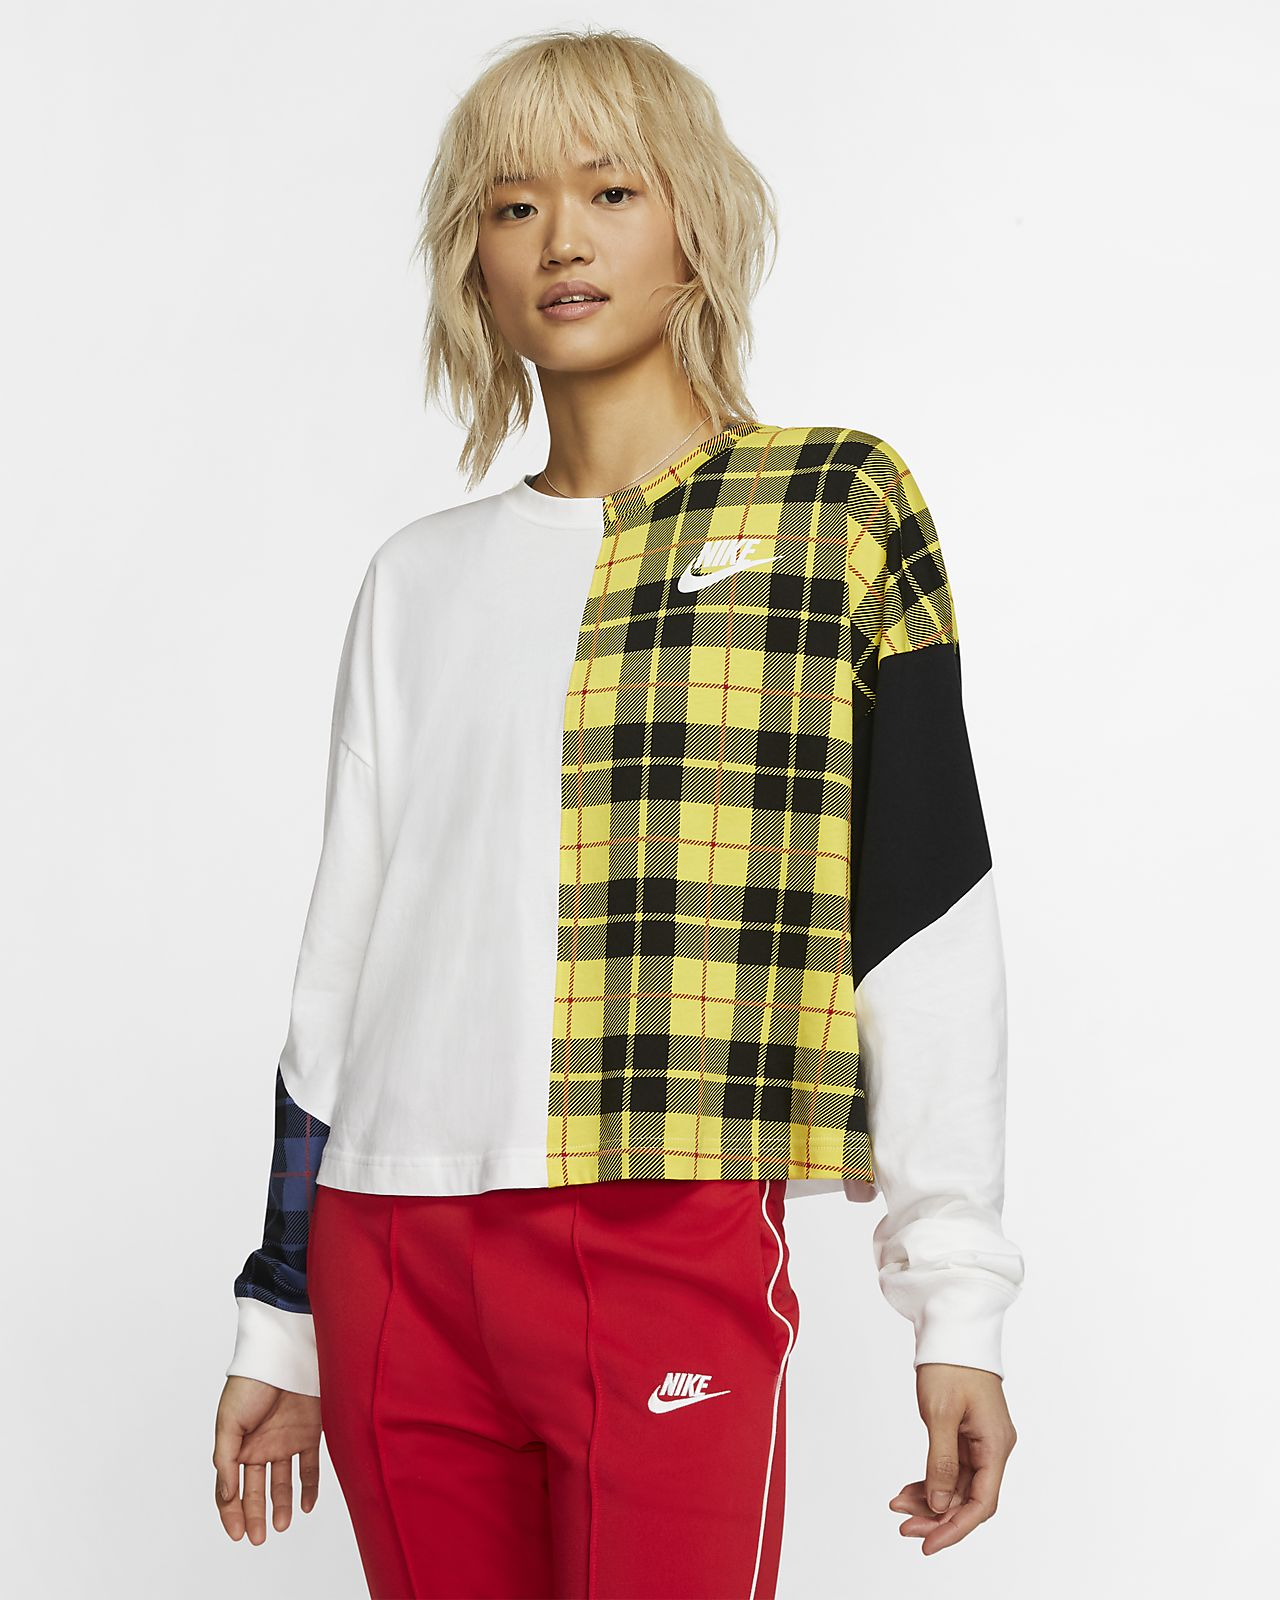 Nike Sportswear NSW Women's Long-Sleeve Checked Top